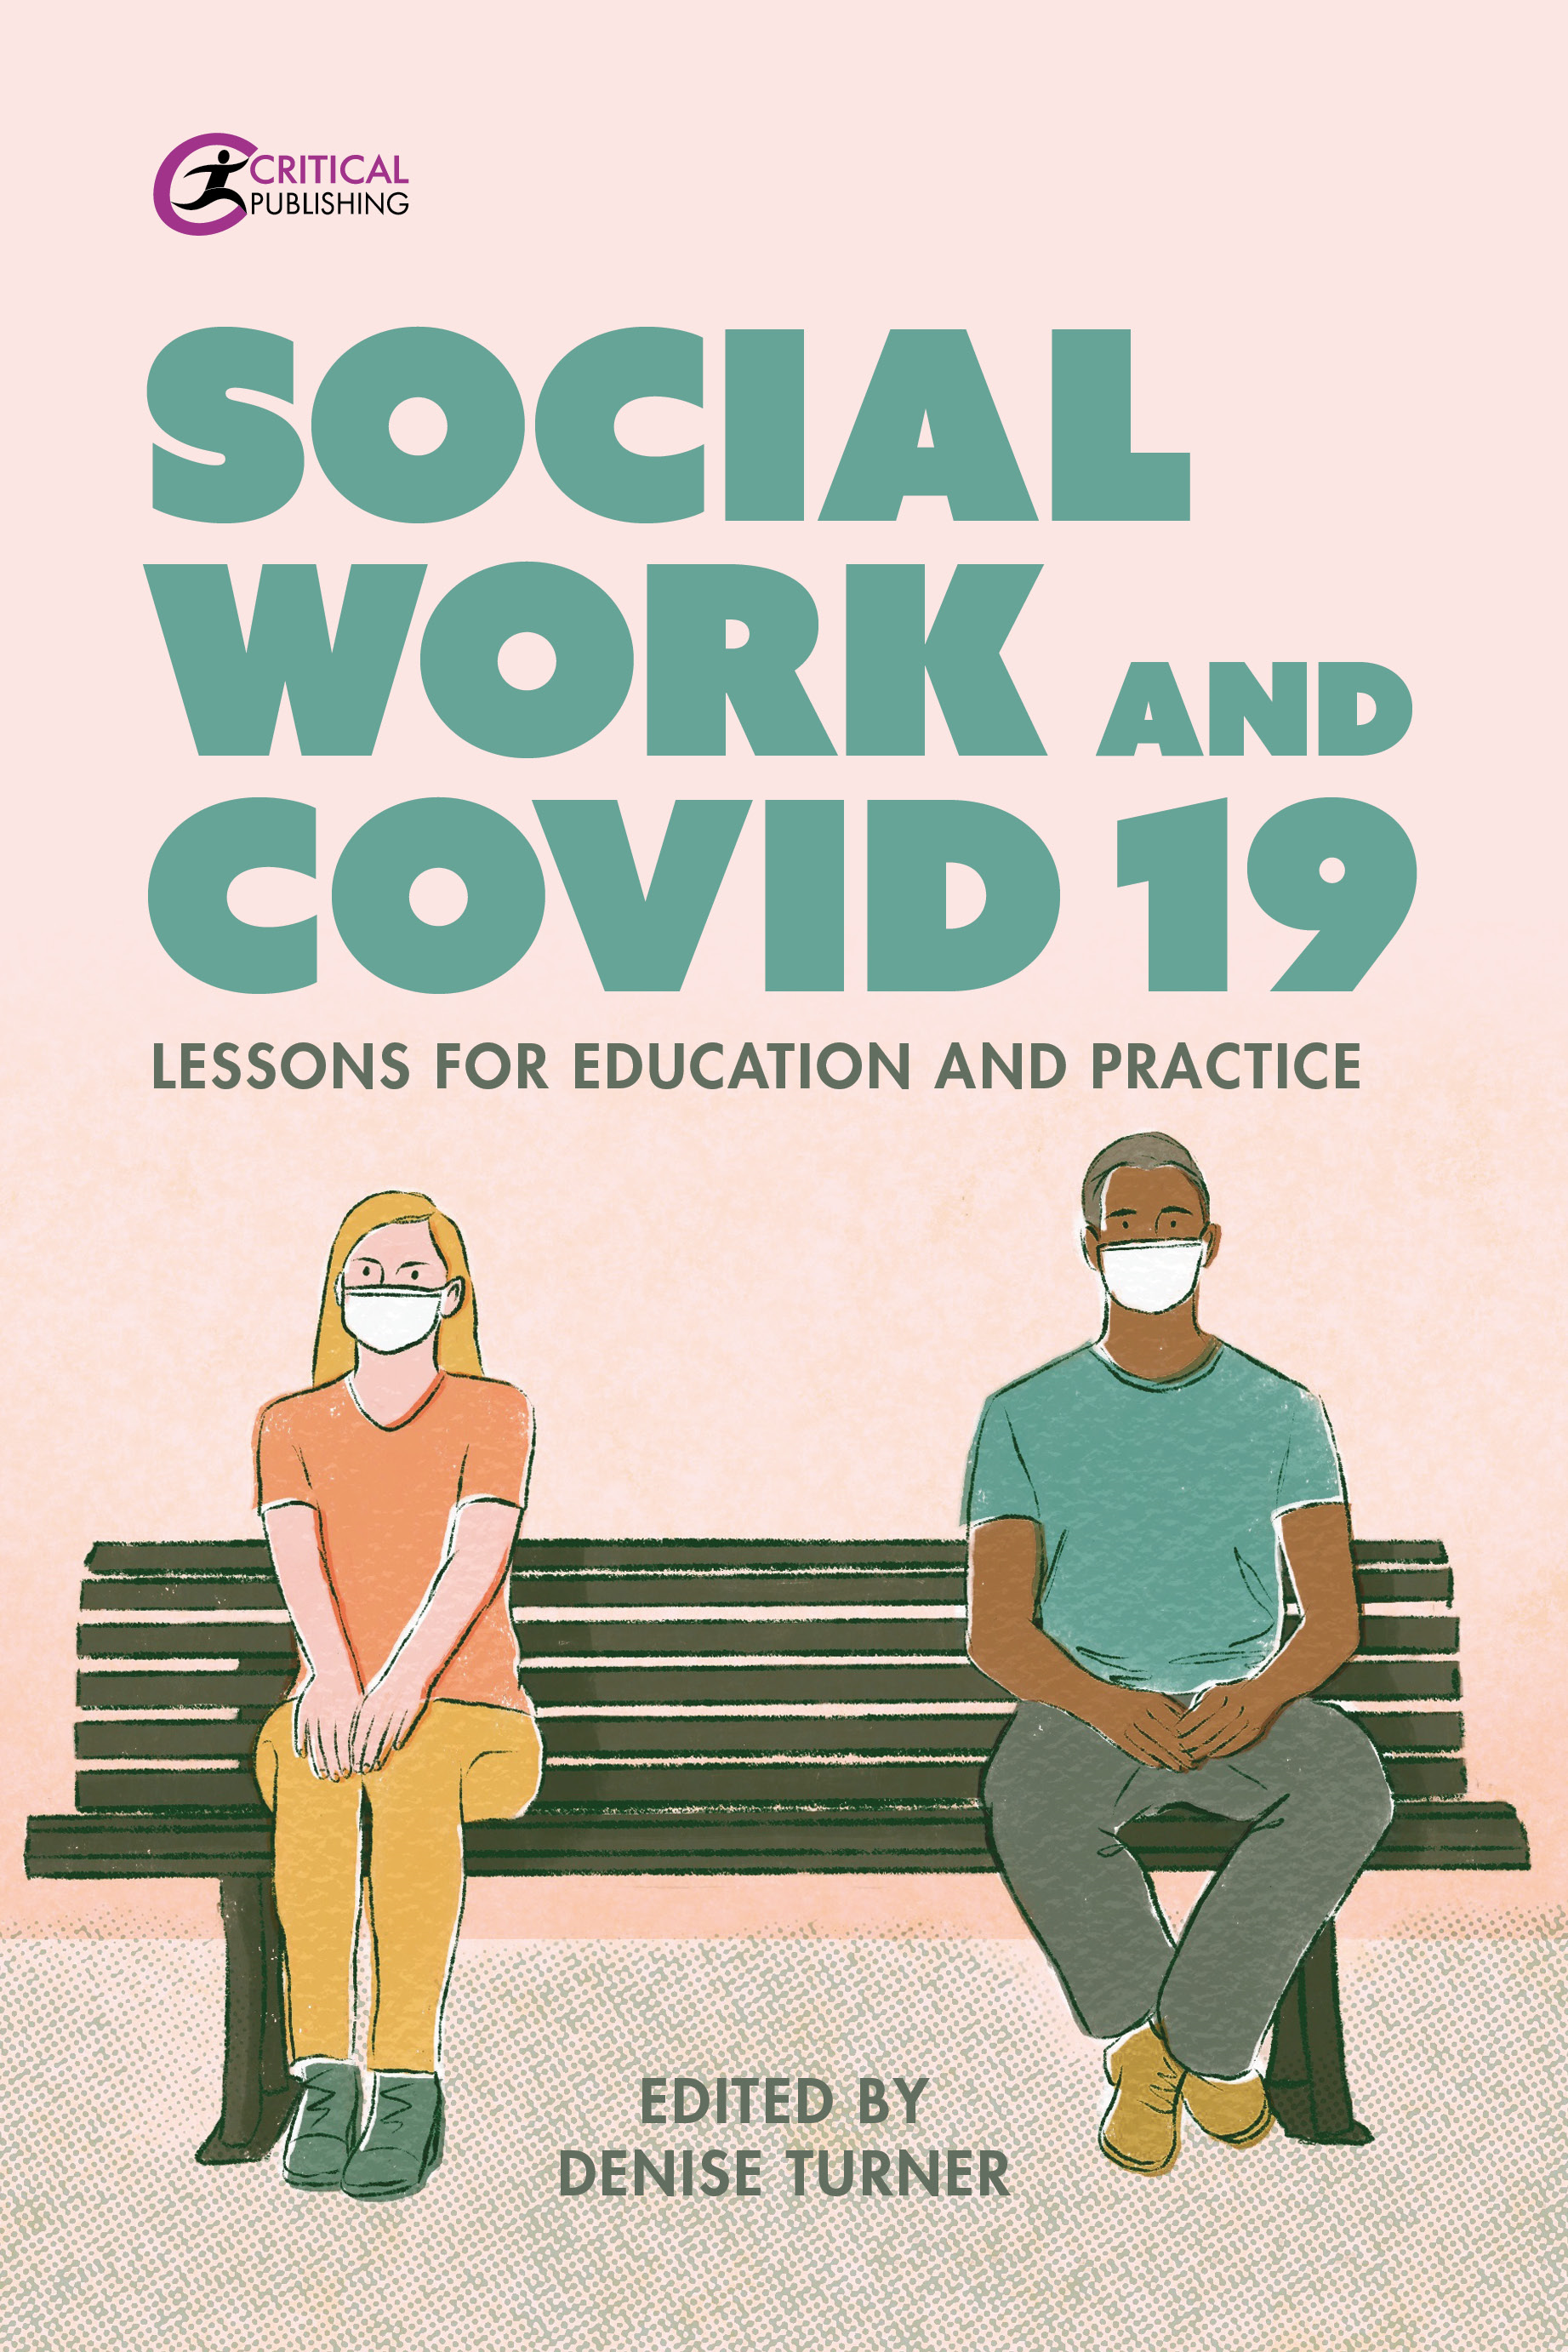 Social Work and Covid-19